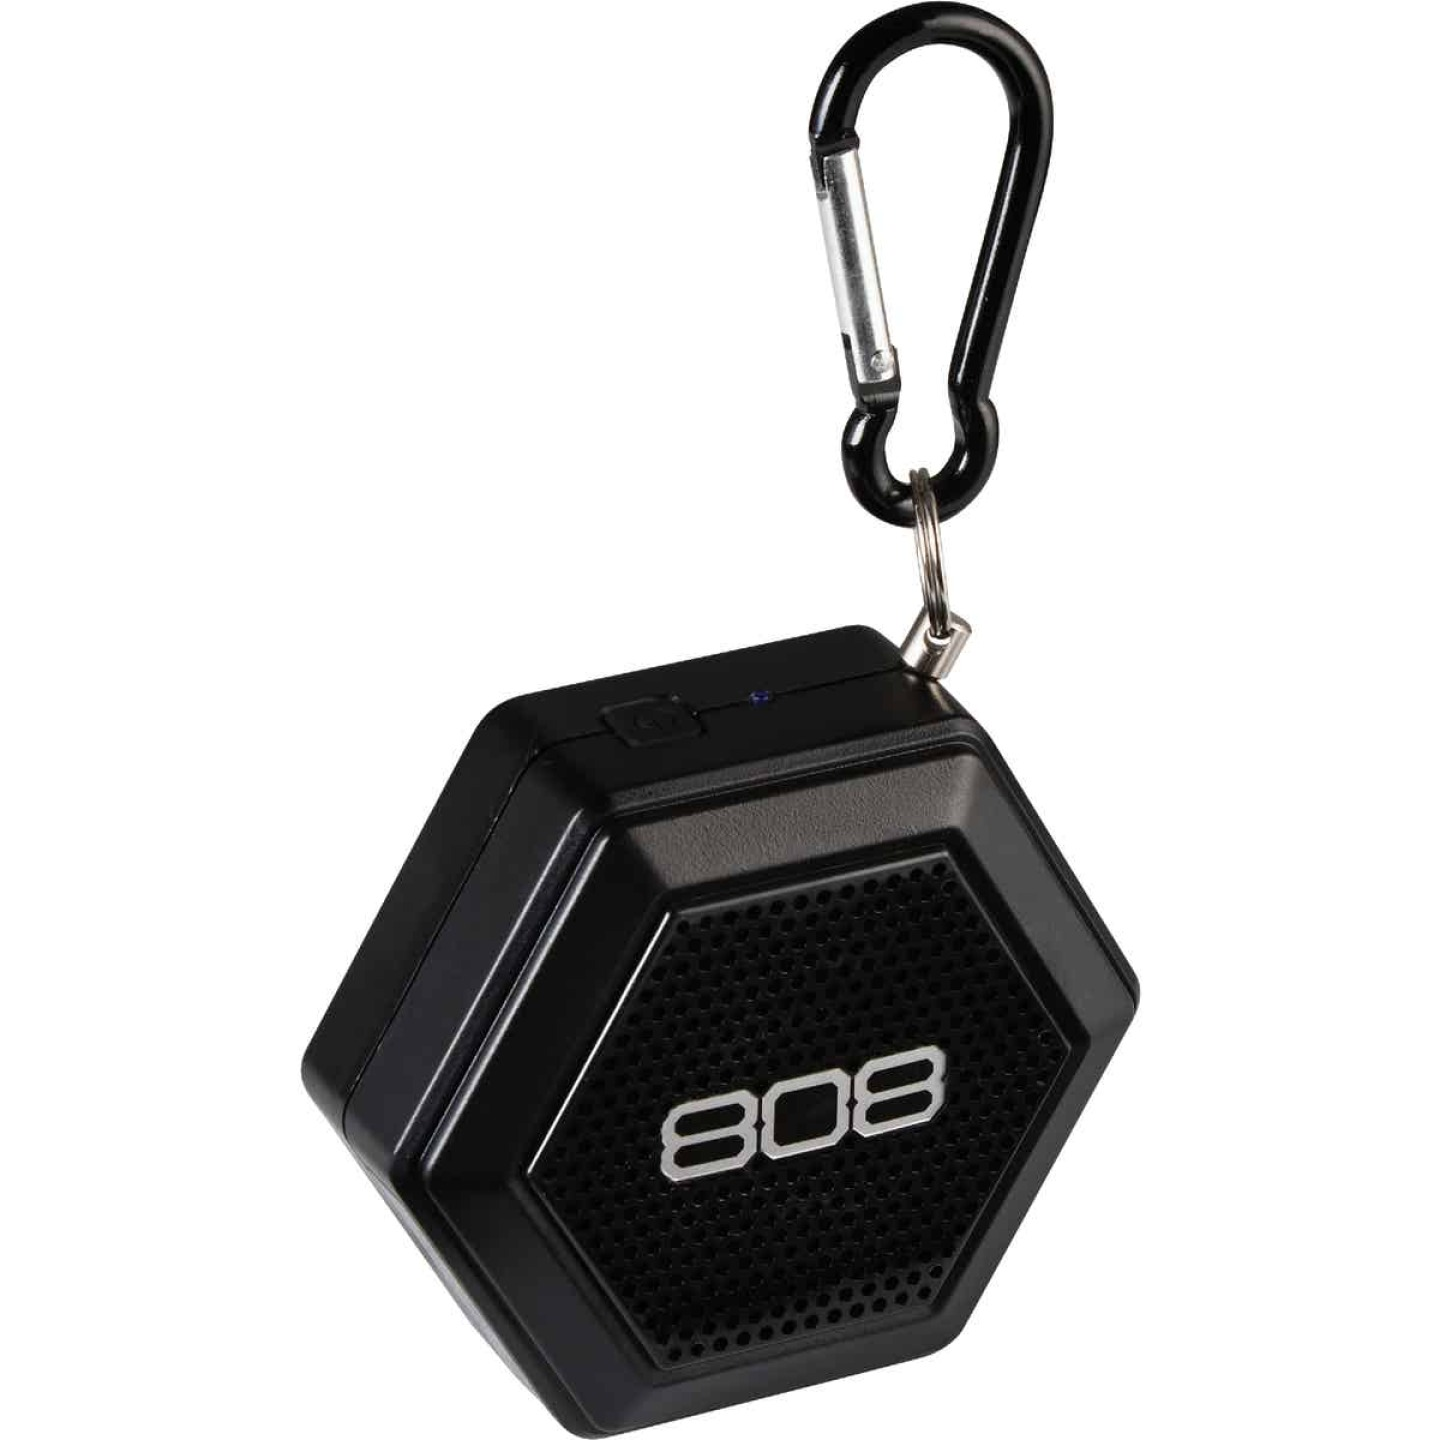 808 Hex Tether Bluetooth Black Wireless Speaker Image 1